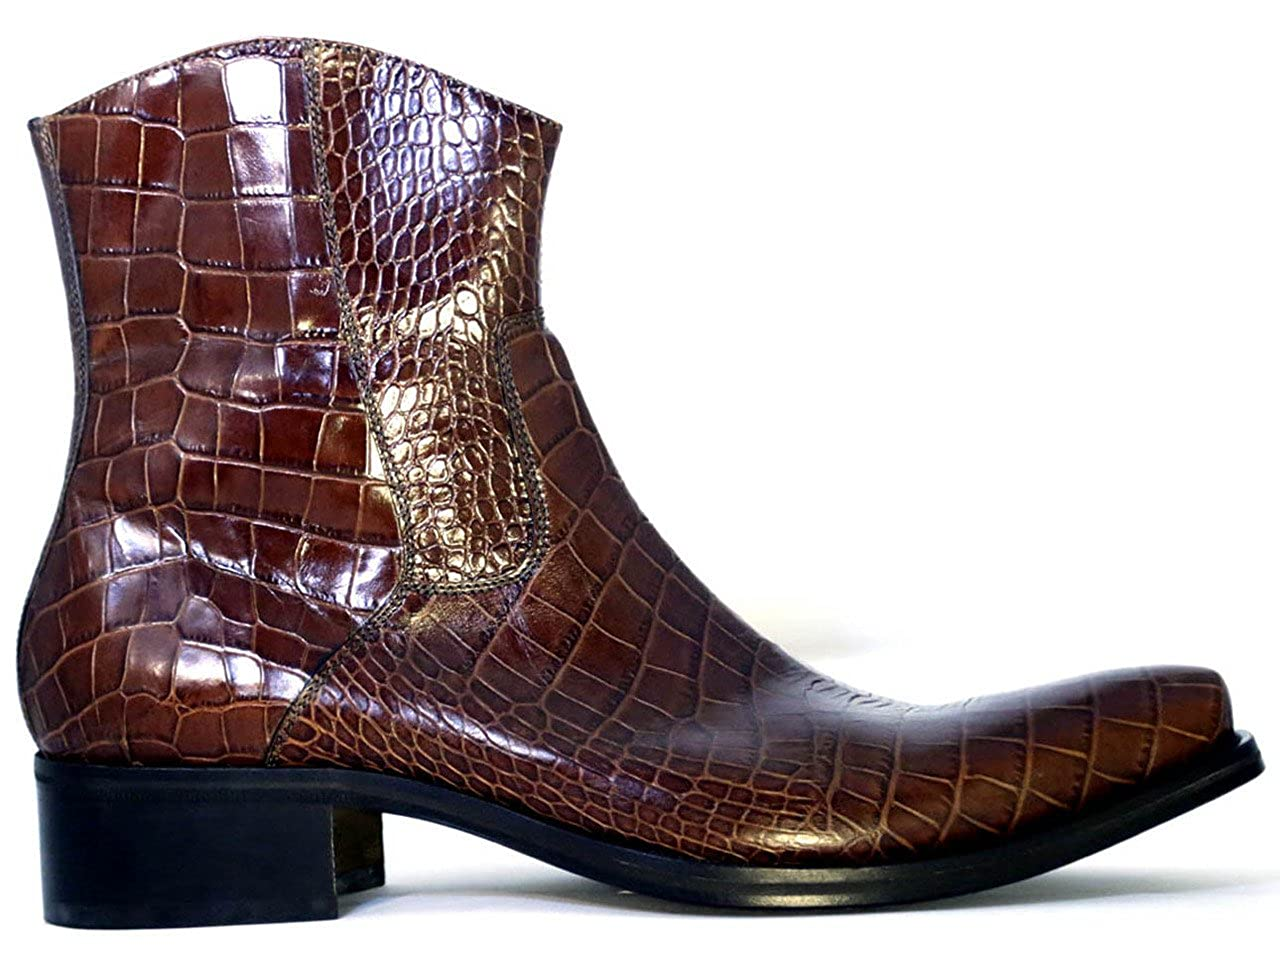 Whisky Nex technicol 20504 Men's Italian Alligator Print Leather